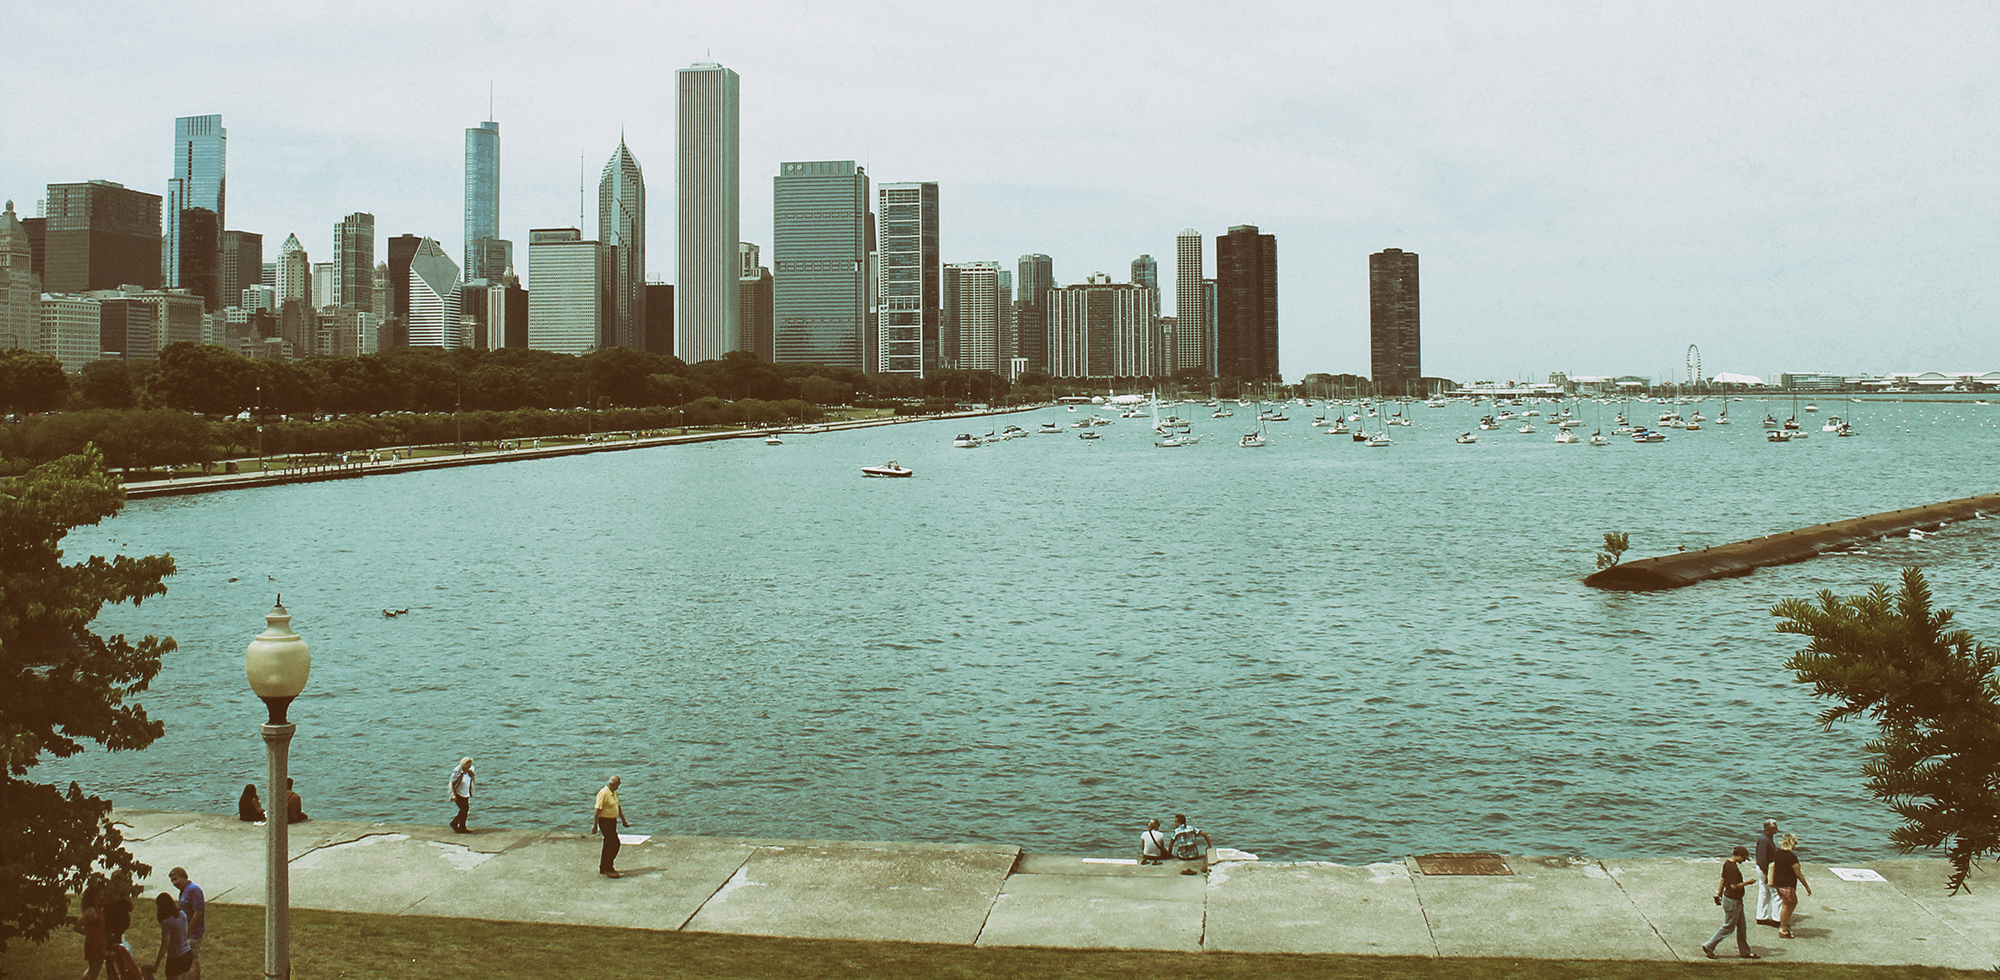 Waterfront, Chicago, IL